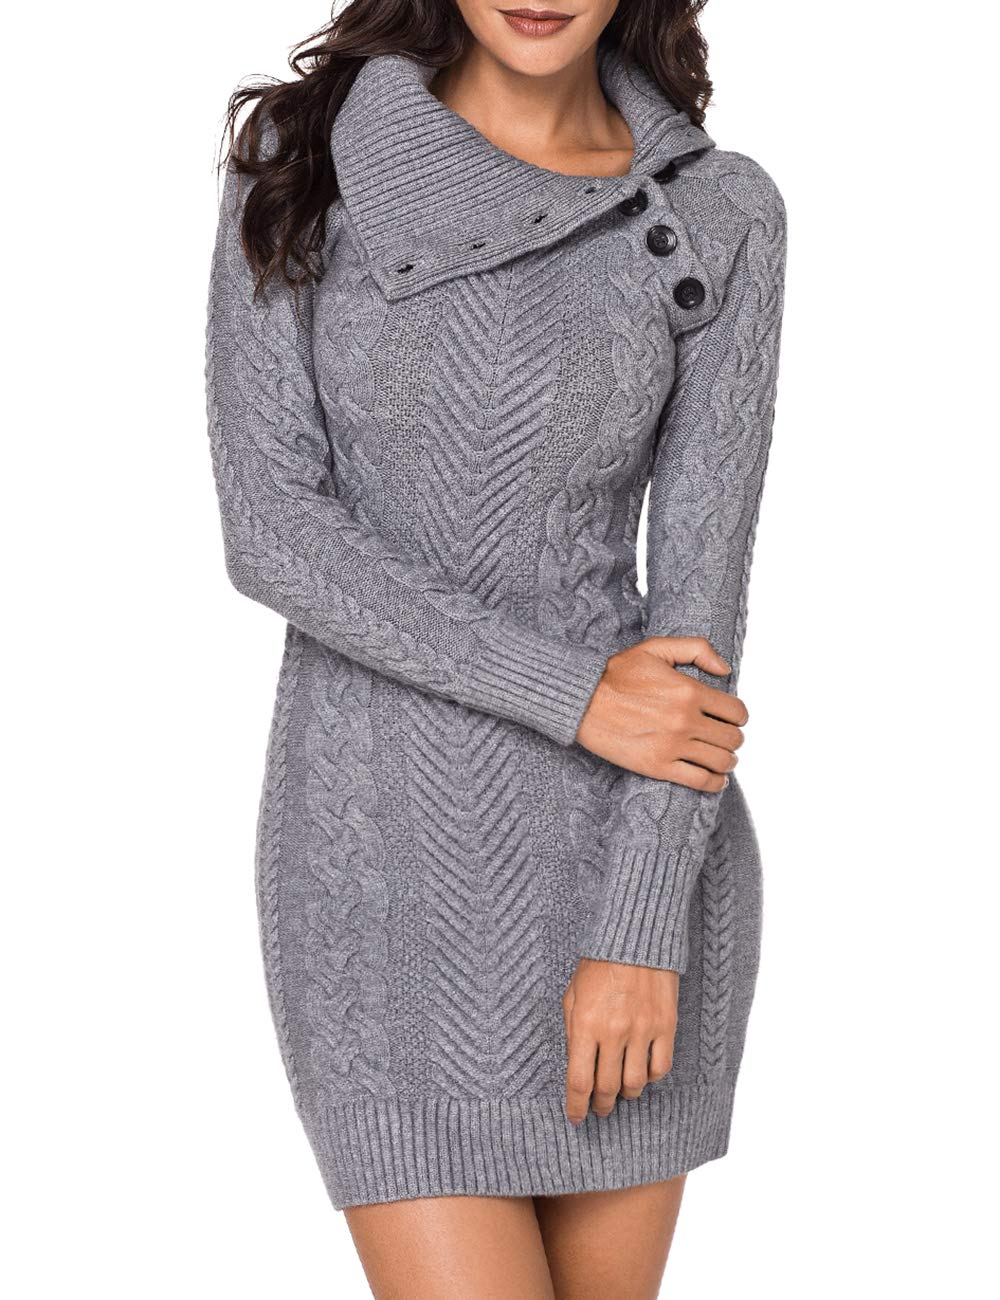 Lookbook Store Women's Grey Asymmetric Button Collar Cable Knit Bodycon Sweater Dress S